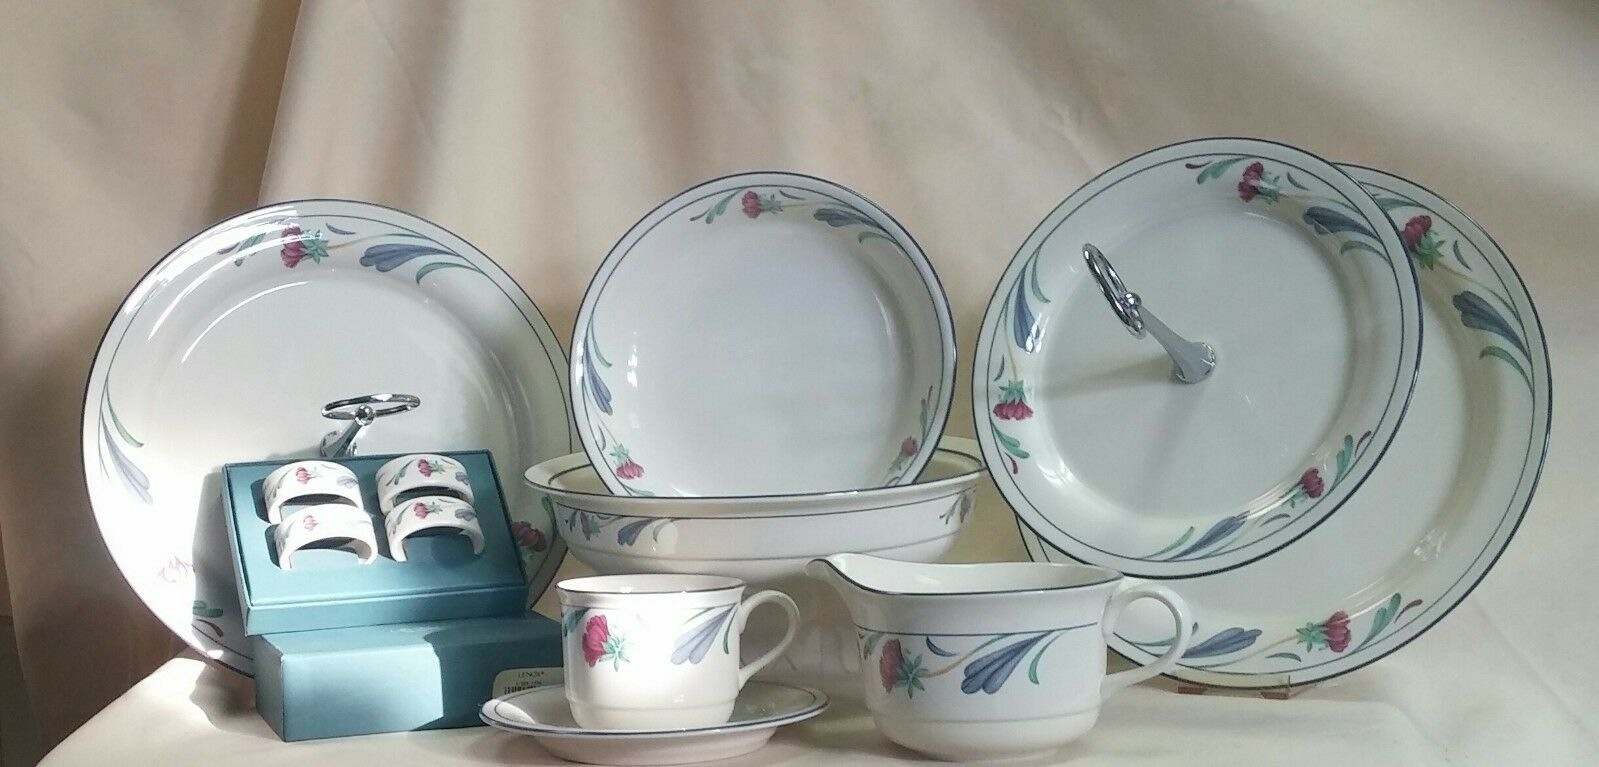 LENOX POPPIES ON BLUE Cup/Saucer Pasta Bowl Vegetable Bowl Gravy Or Tiered Tray  - $23.00